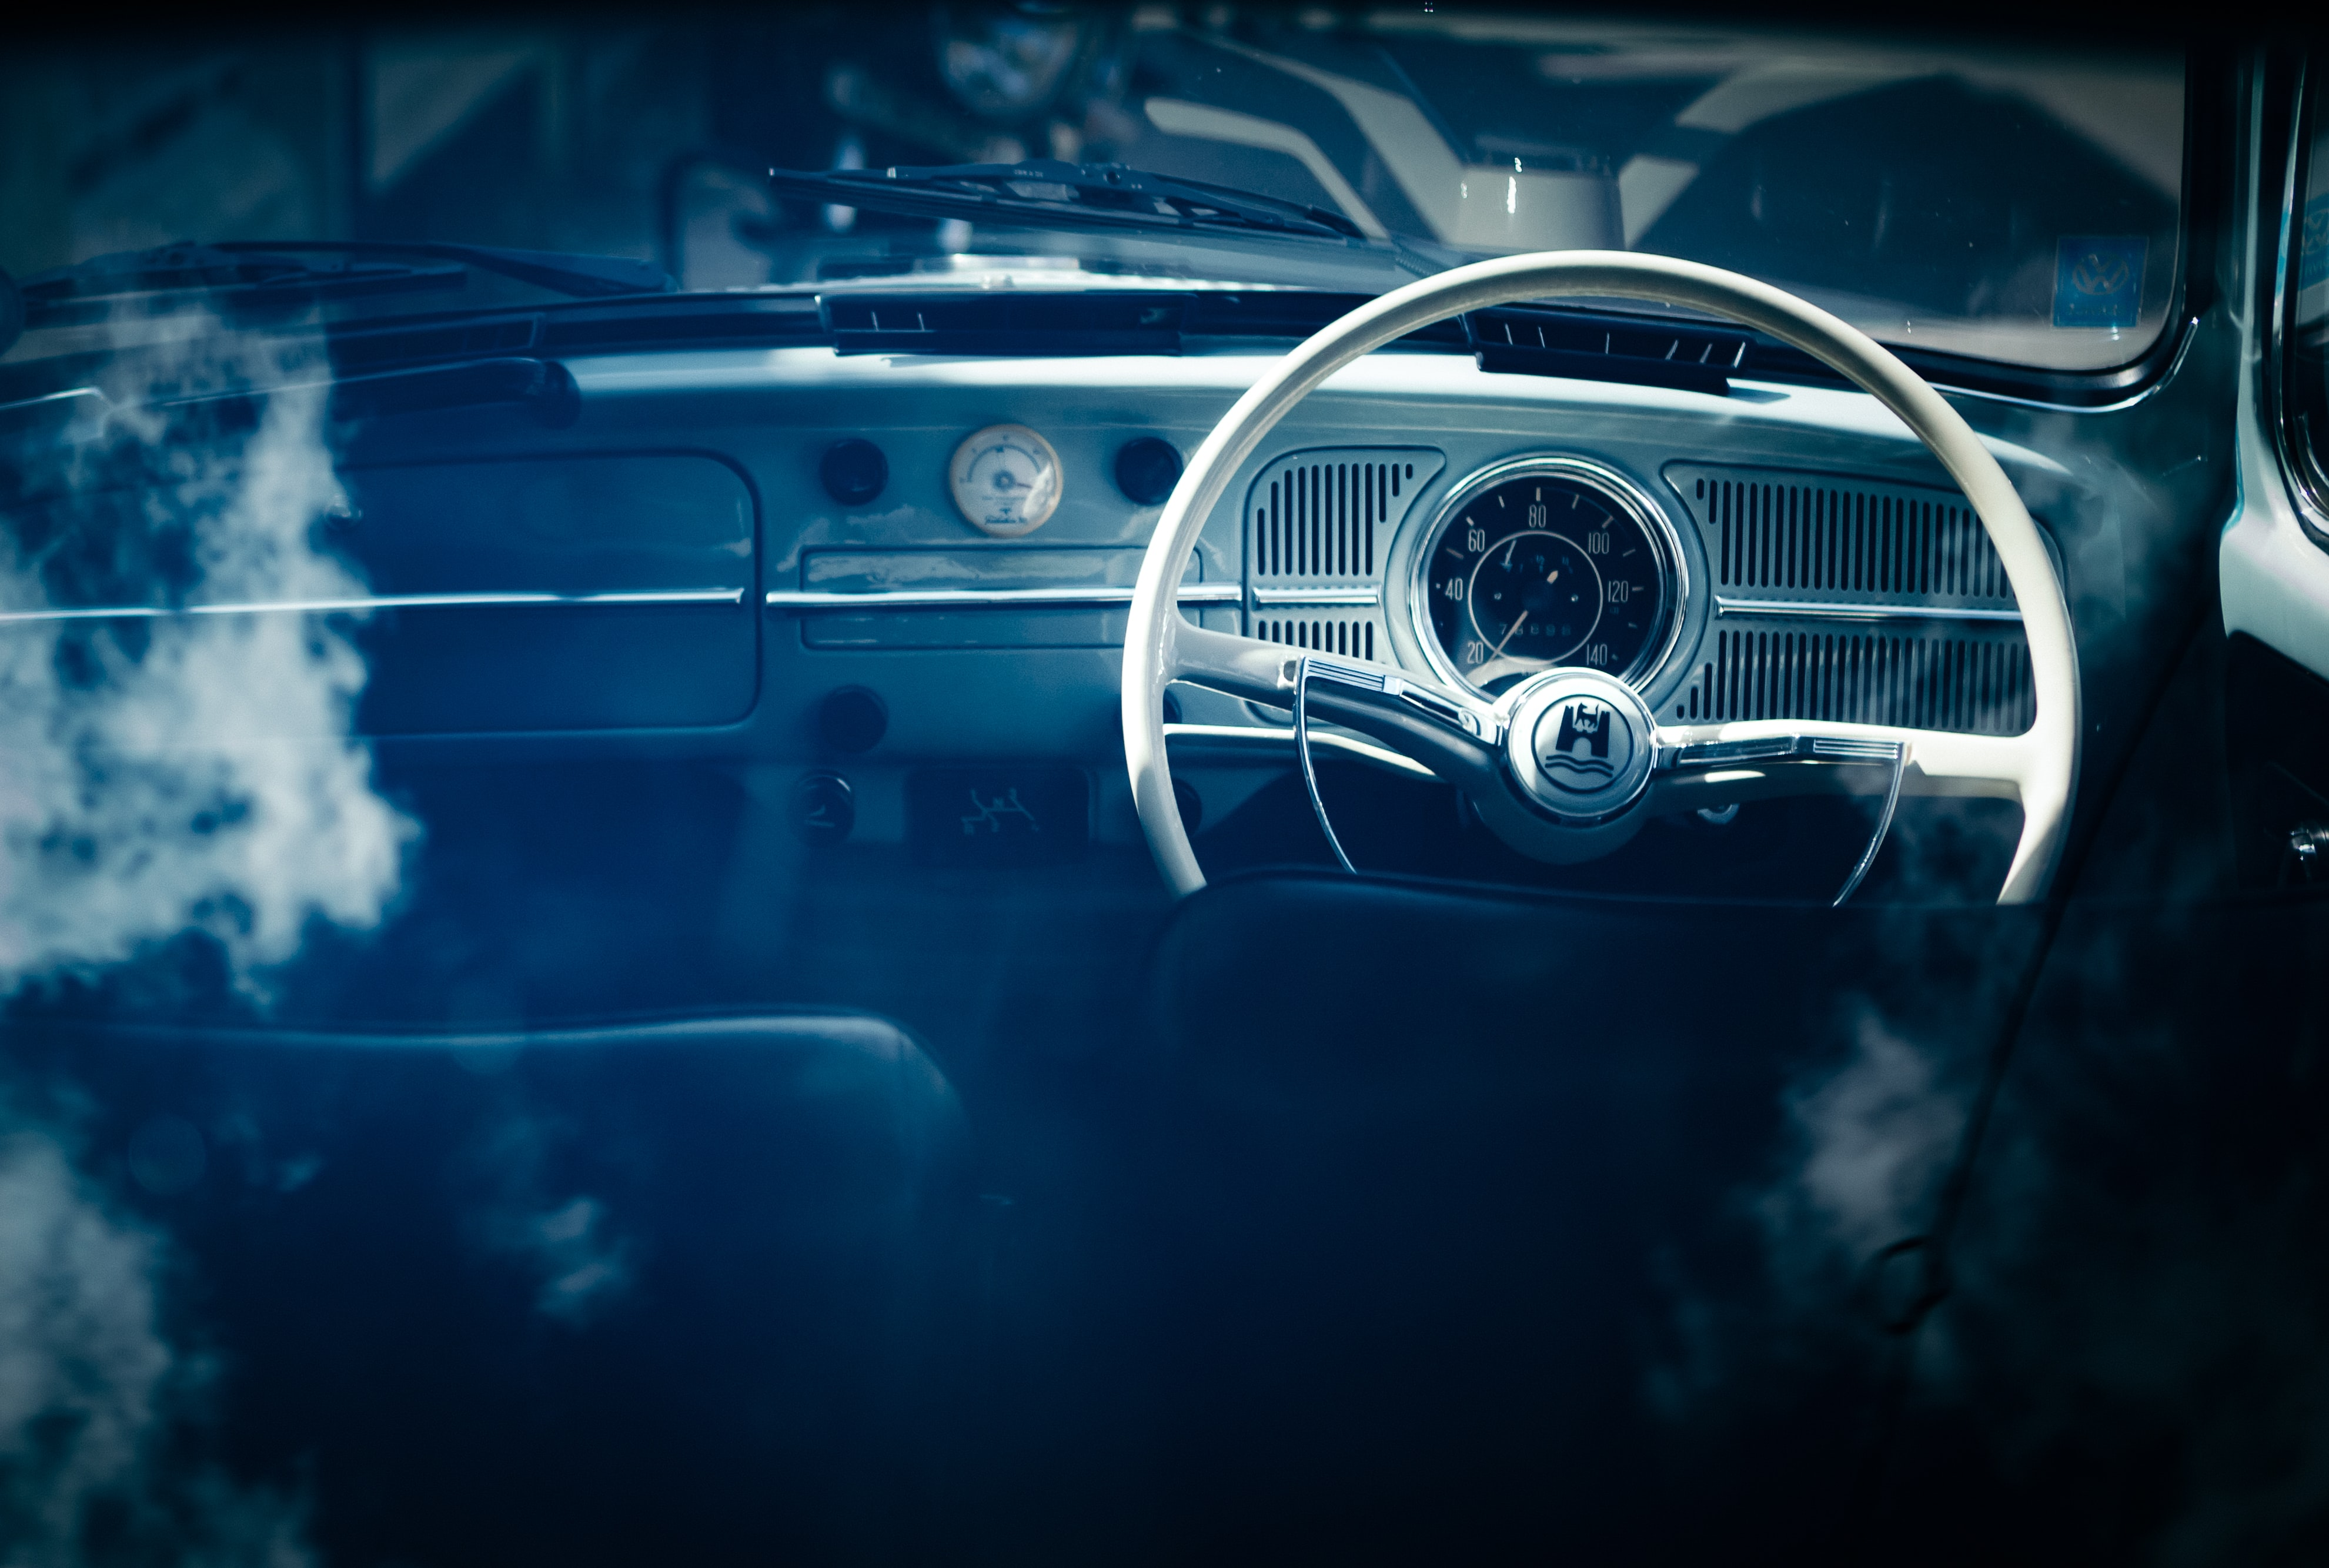 Dashboard and steering wheel of a vintage car in Kochi.